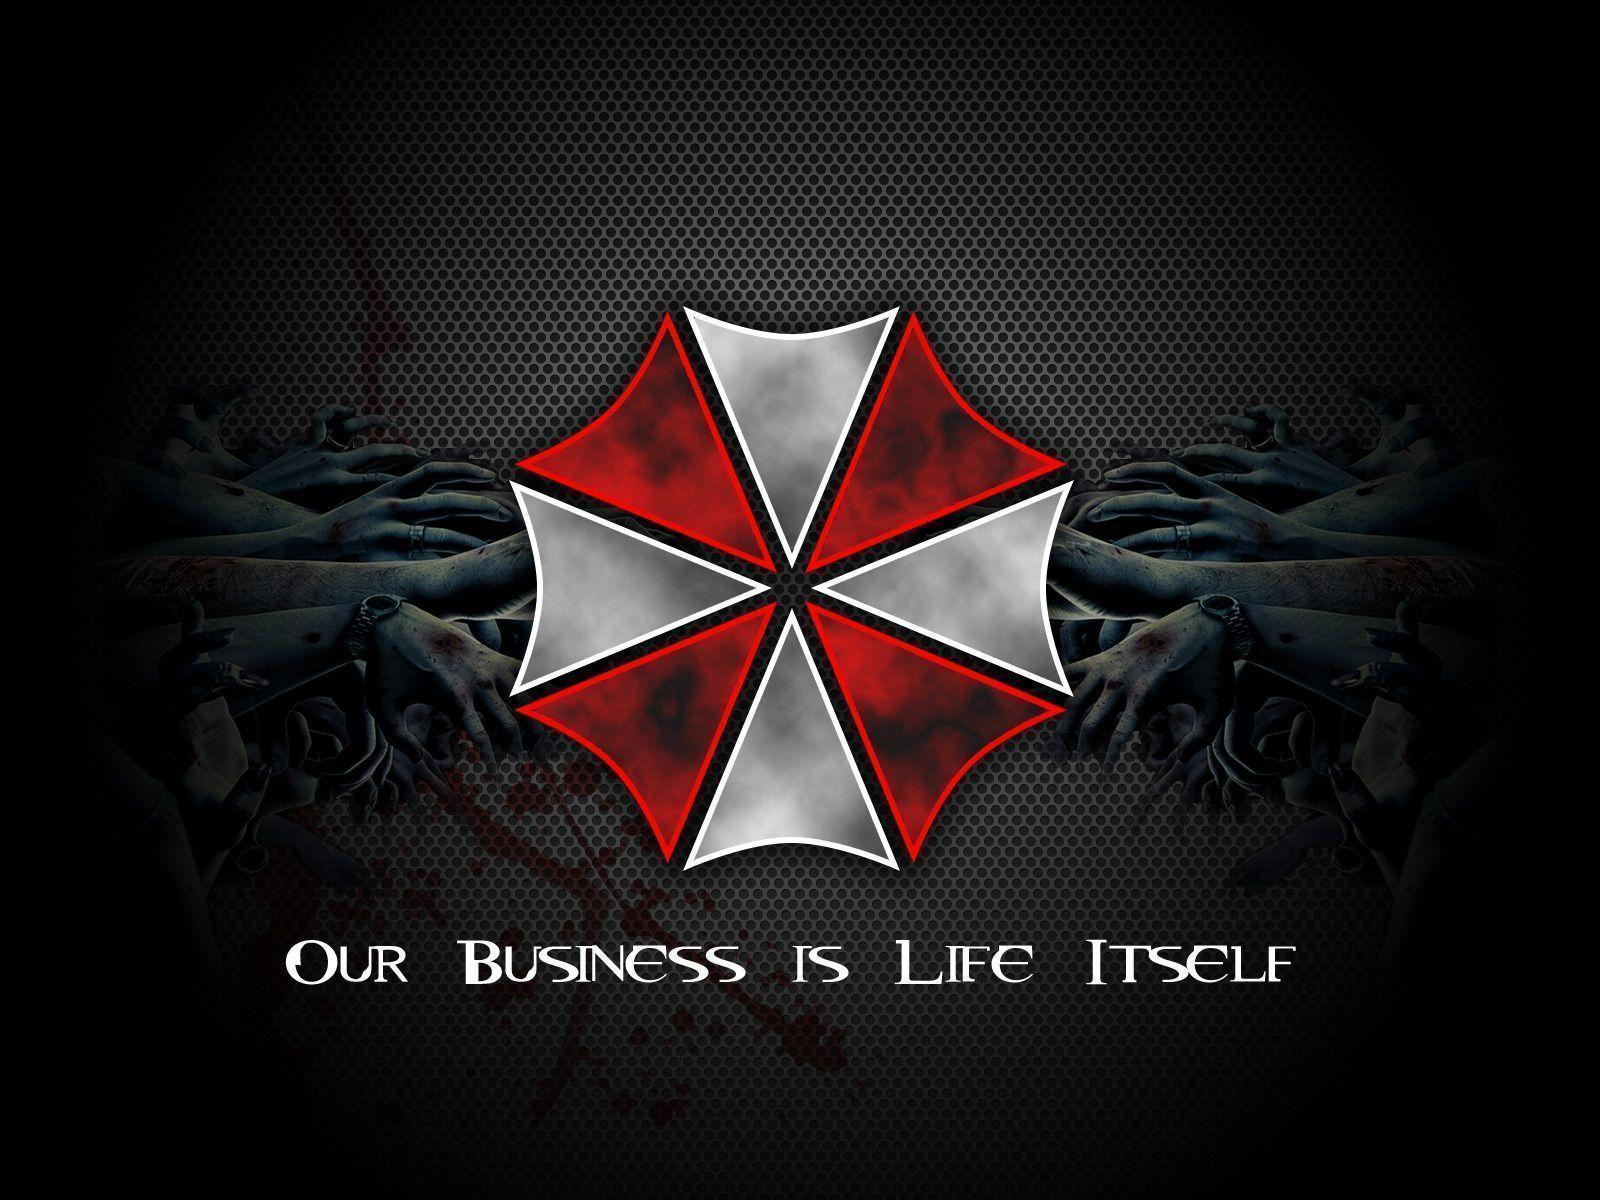 Umbrella Corp Animated Wallpaper HD Wallpapers Pictures | HD ...